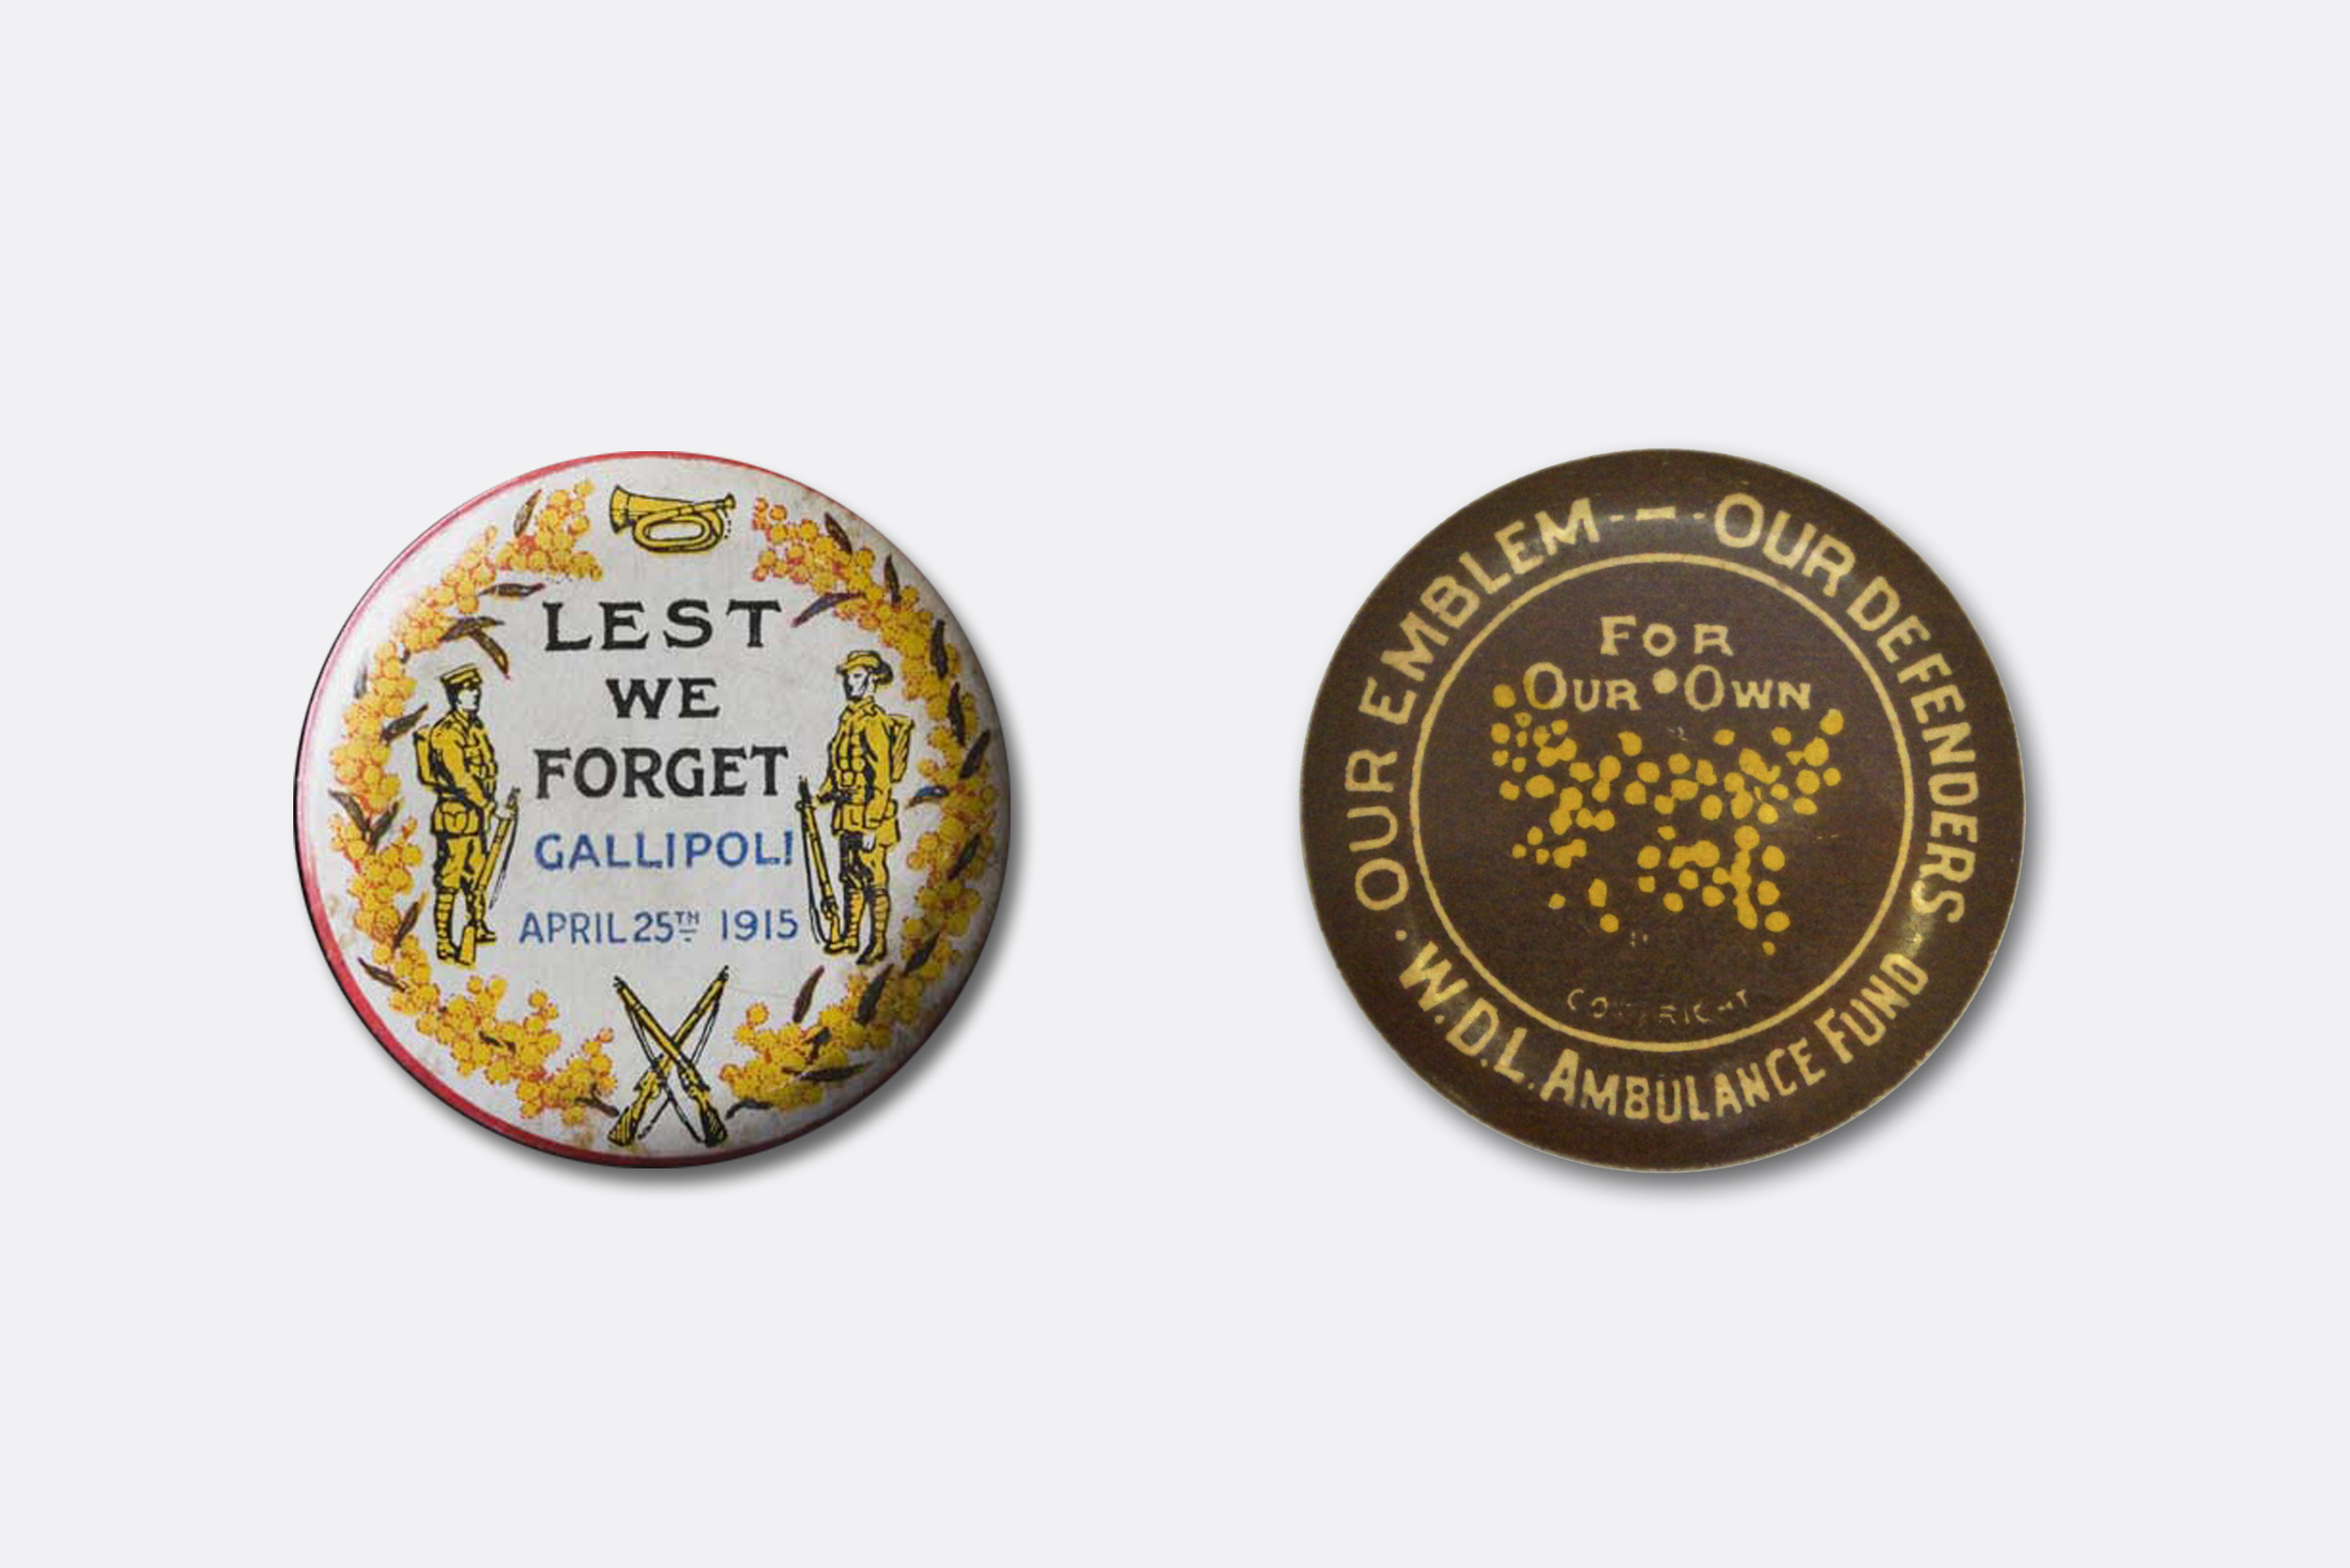 Left: Wattle borders this badge, which commemorates Australia's involvement in the Gallipoli campaign. Right: Wattle Day, Our Emblem, Our Defenders, W.D.L. Ambulance Fund charity badge (1914-1919). Images courtesy of the National Museum of Australia.